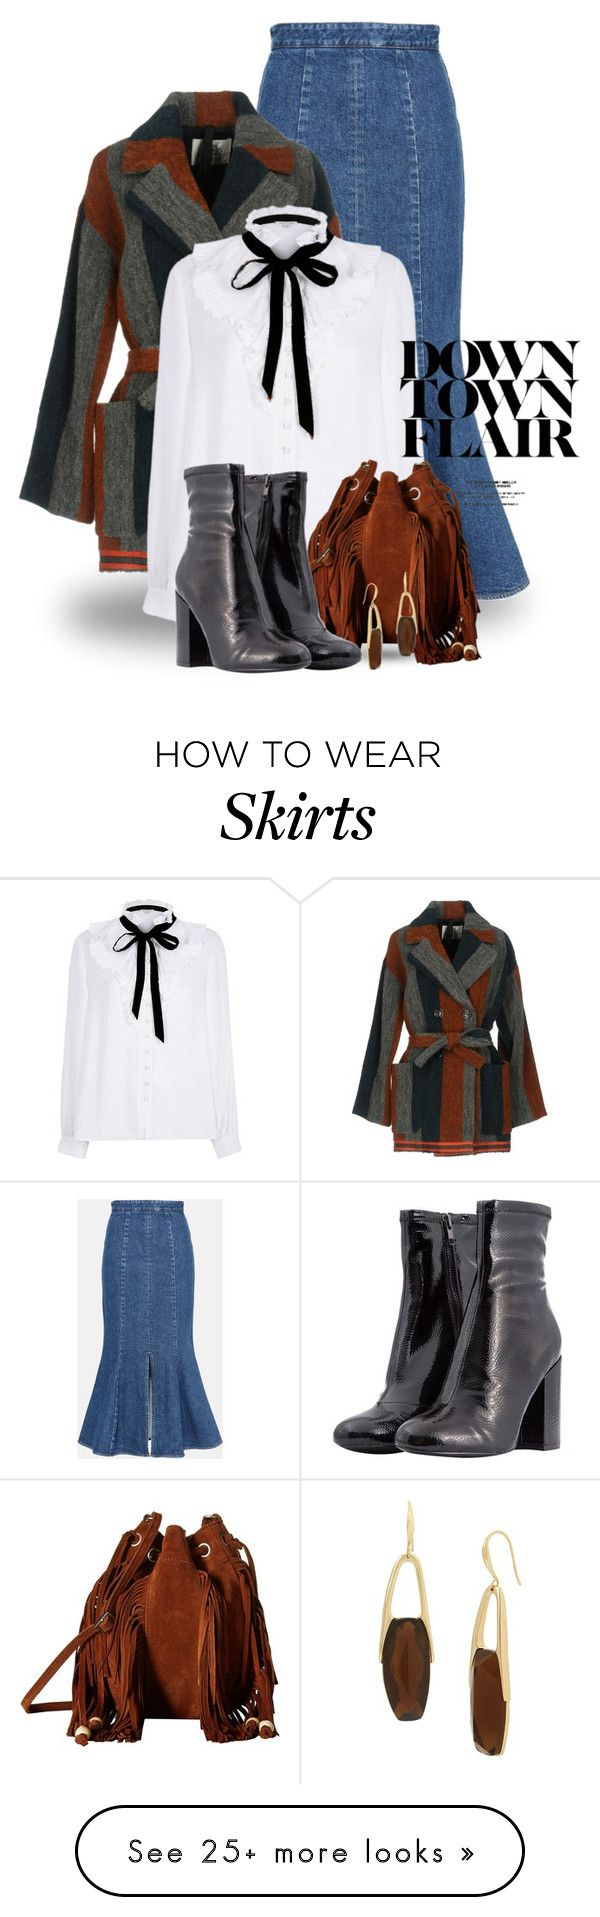 """""""Bags a la Fringe 4784"""" by boxthoughts on Polyvore featuring STELLA McCARTNEY, Attic and Barn, River Island, TOMS, Steve Madden and Robert Lee Morris"""